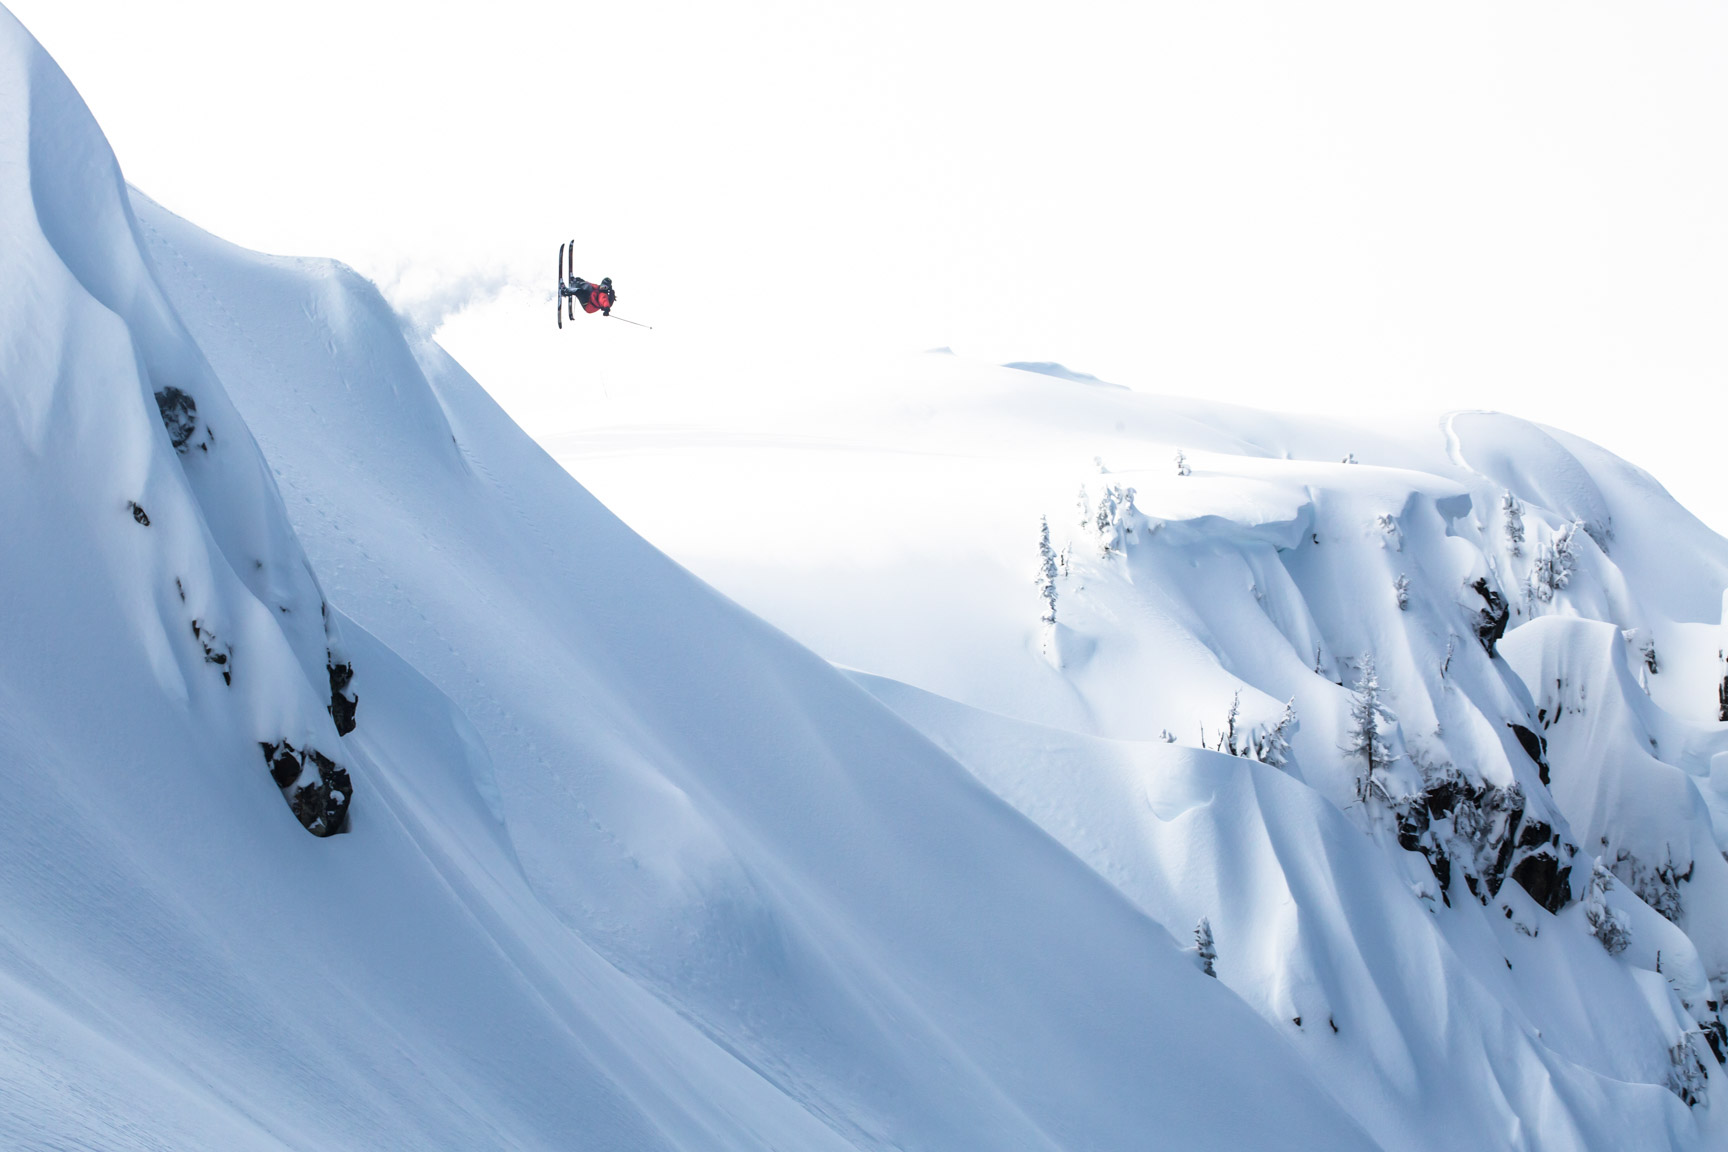 Kye Petersen, Coast Mountains, Canada